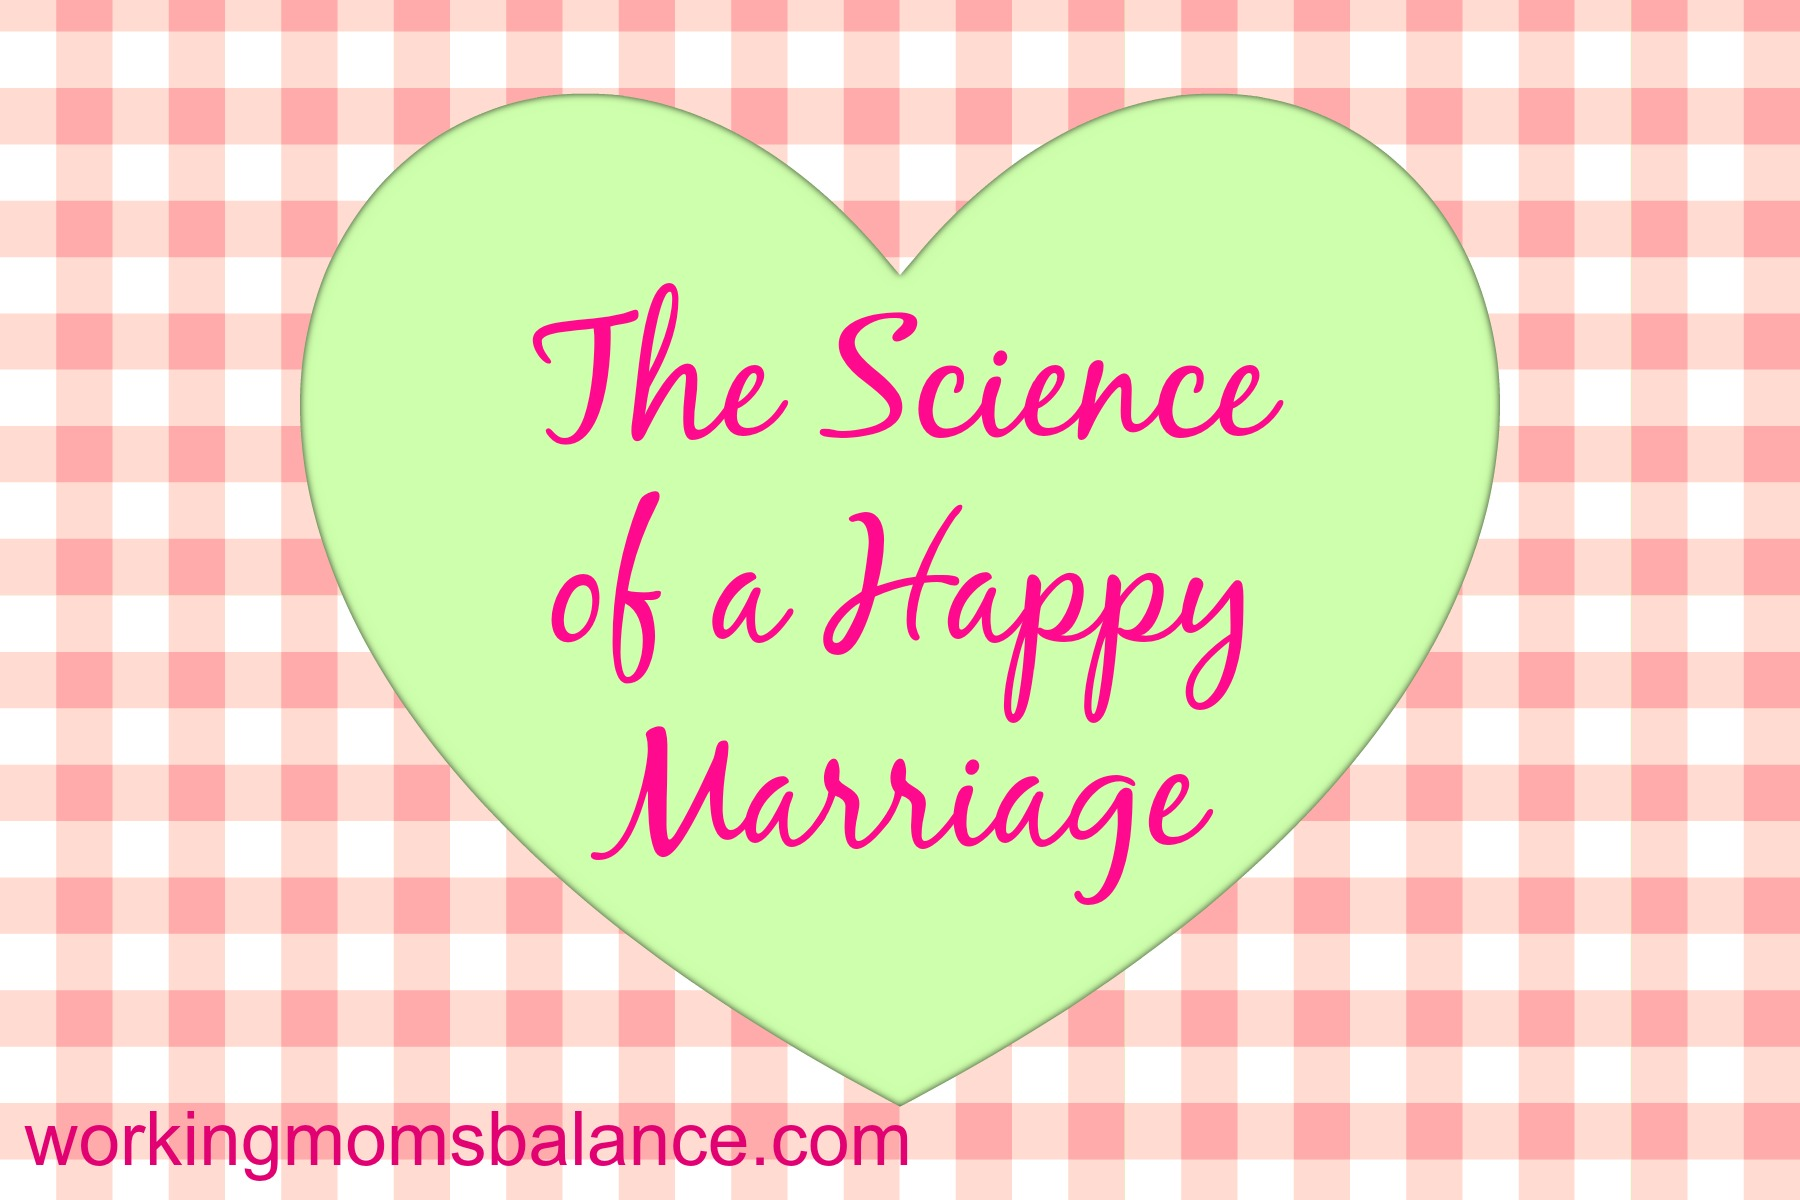 The Science of a Happy Marriage